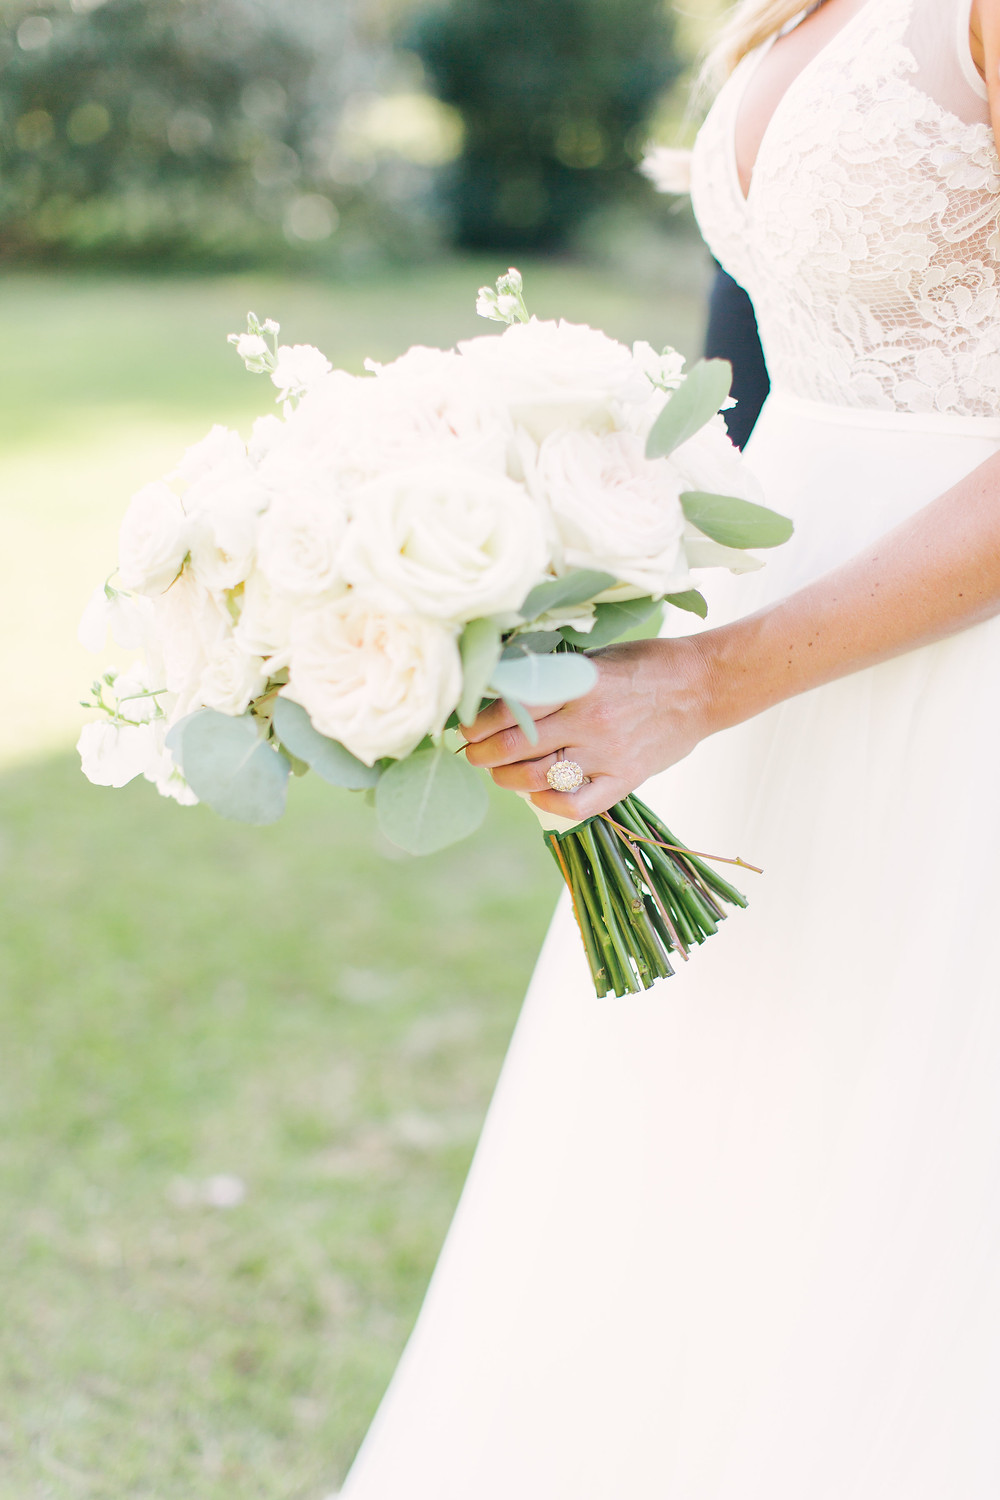 White Wedding Bouquet - Let Destiny Design - Sarahdipity Photography